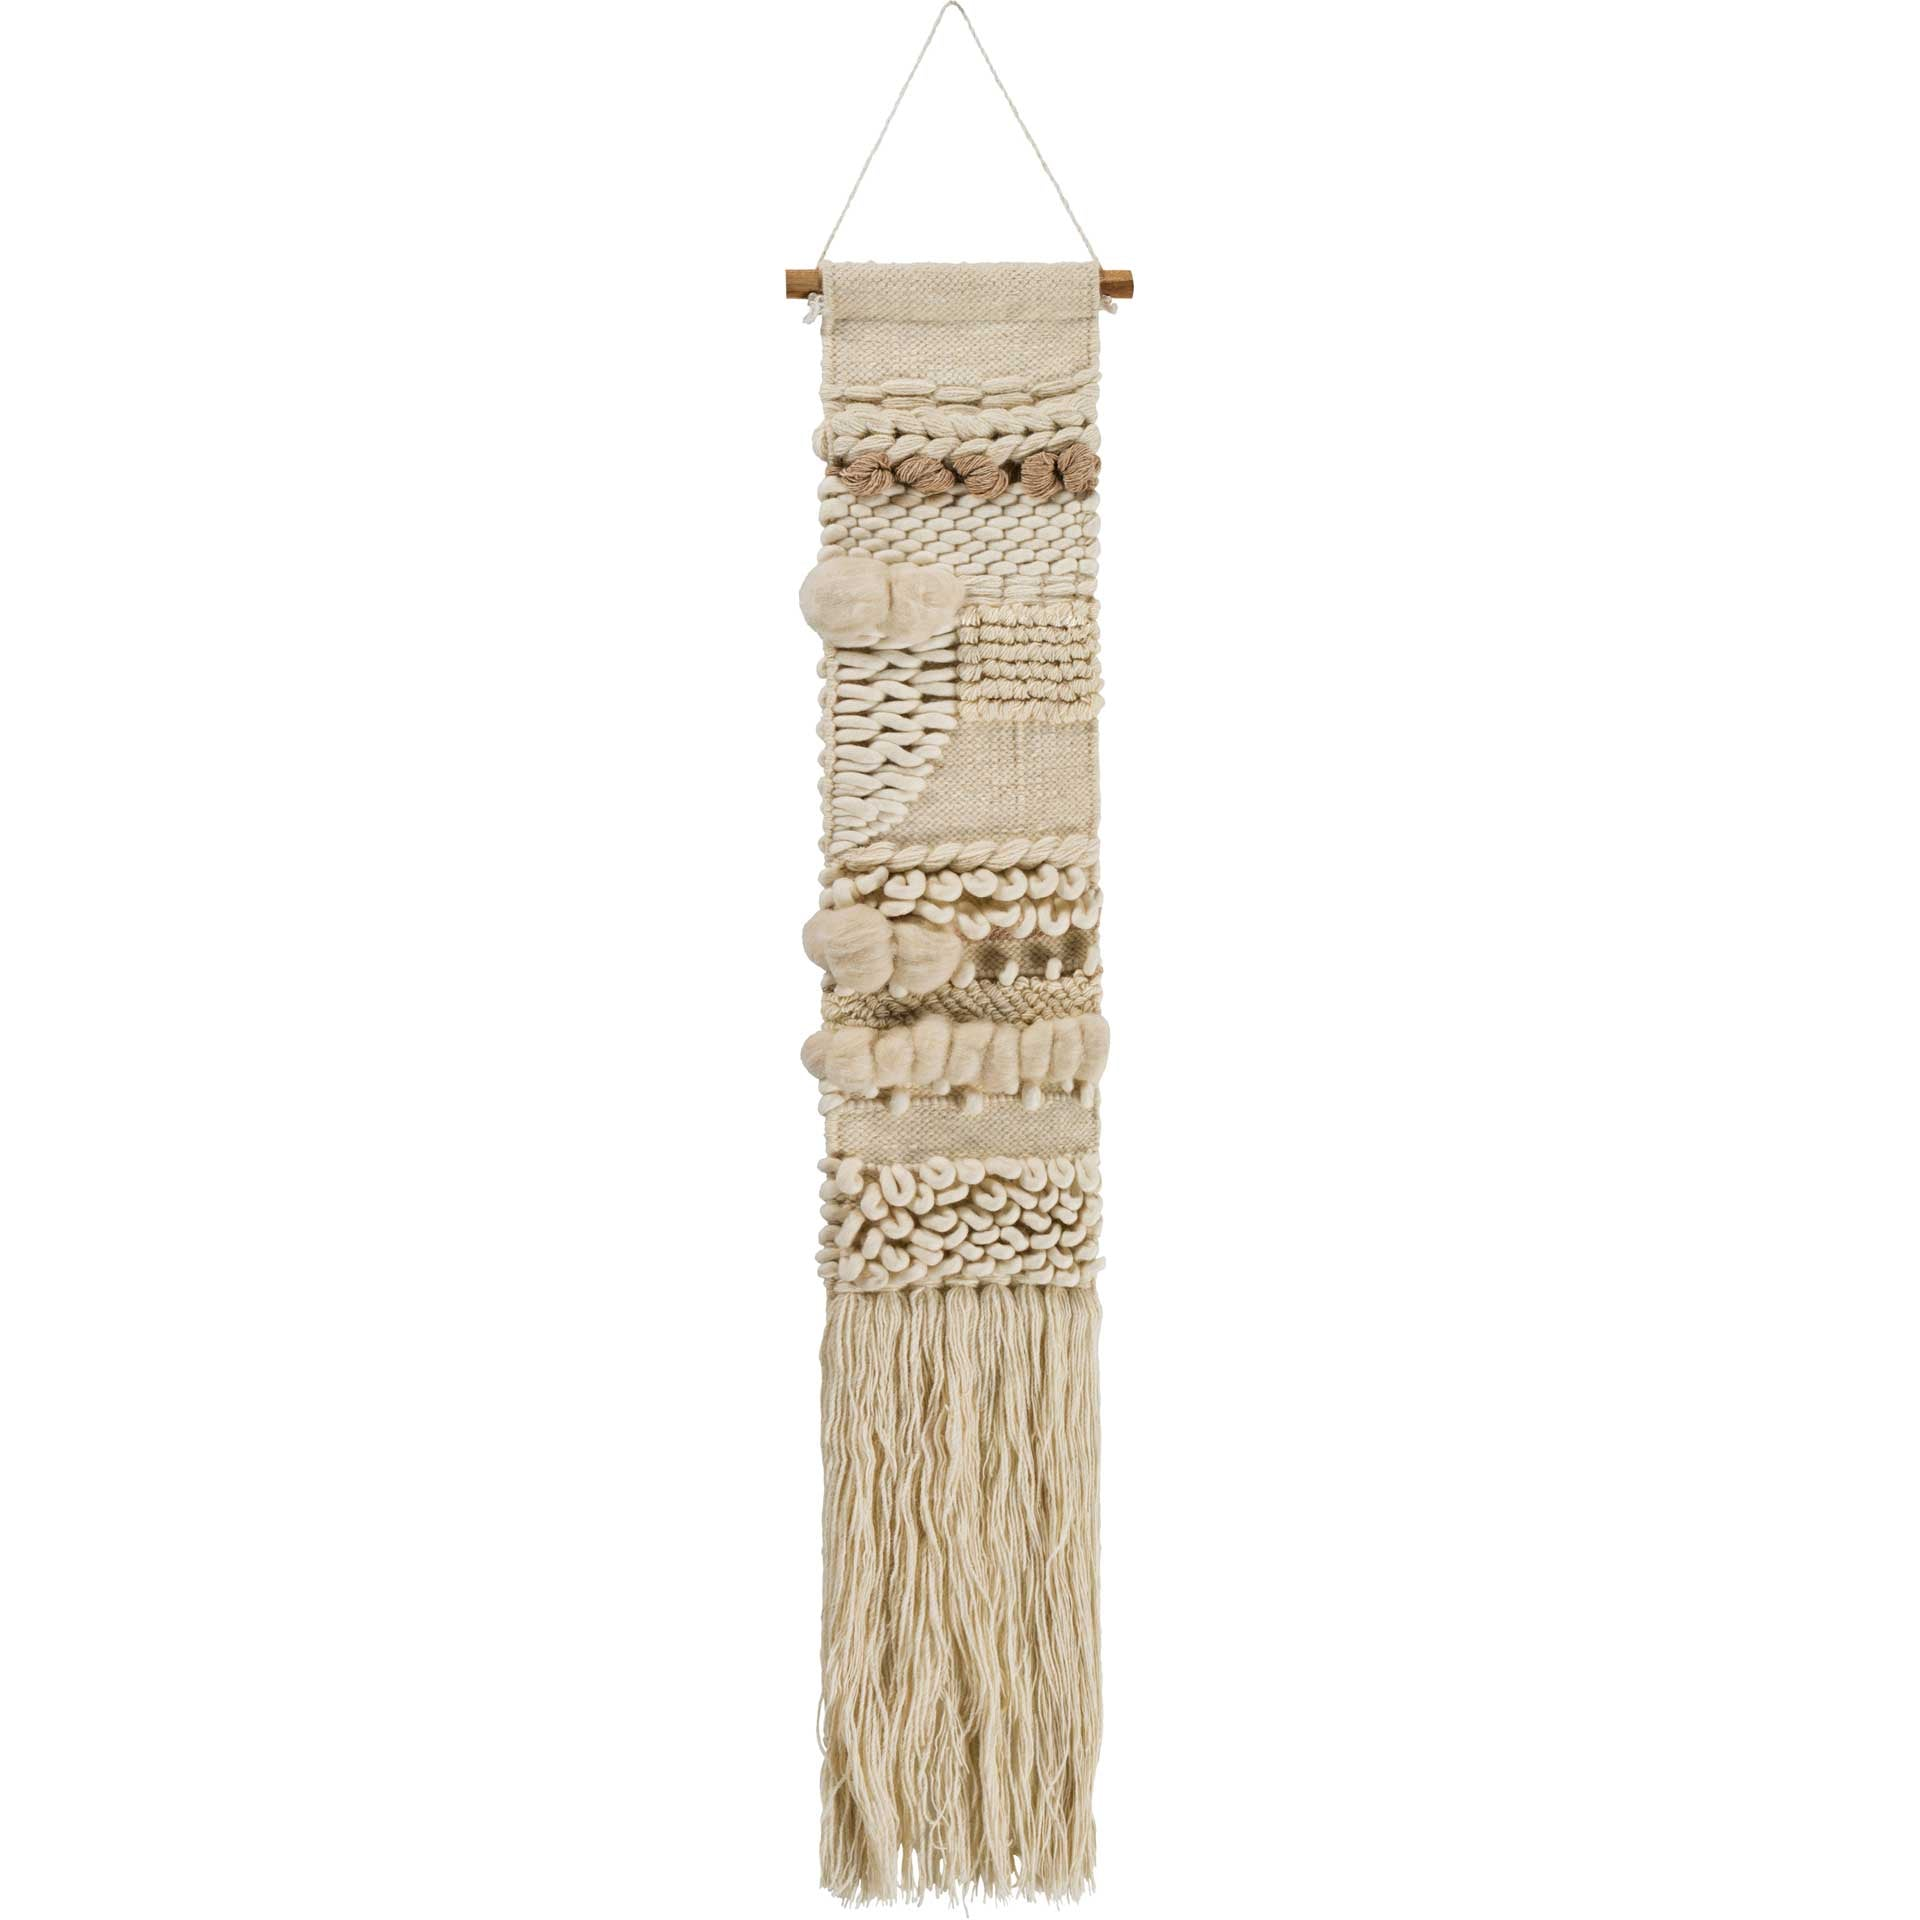 Kailani Wall Hanging Cream/Wheat